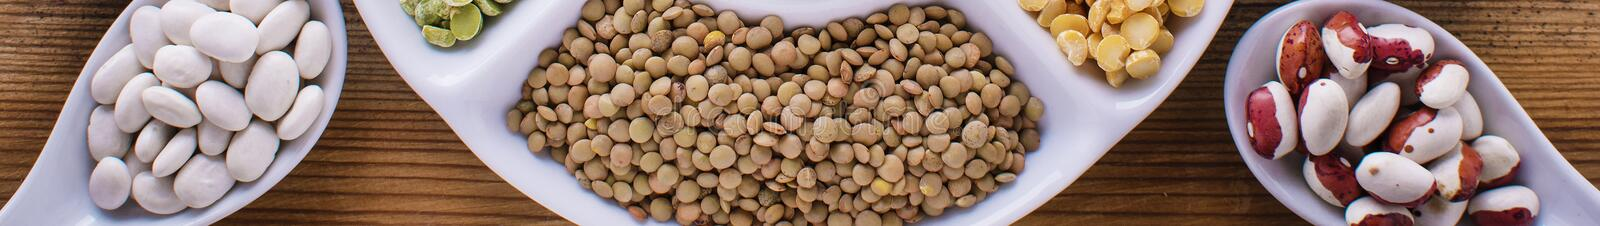 Various assortment of legumes - beans, soy beans, chickpeas, lentils, green peas. Top view banner format royalty free stock image